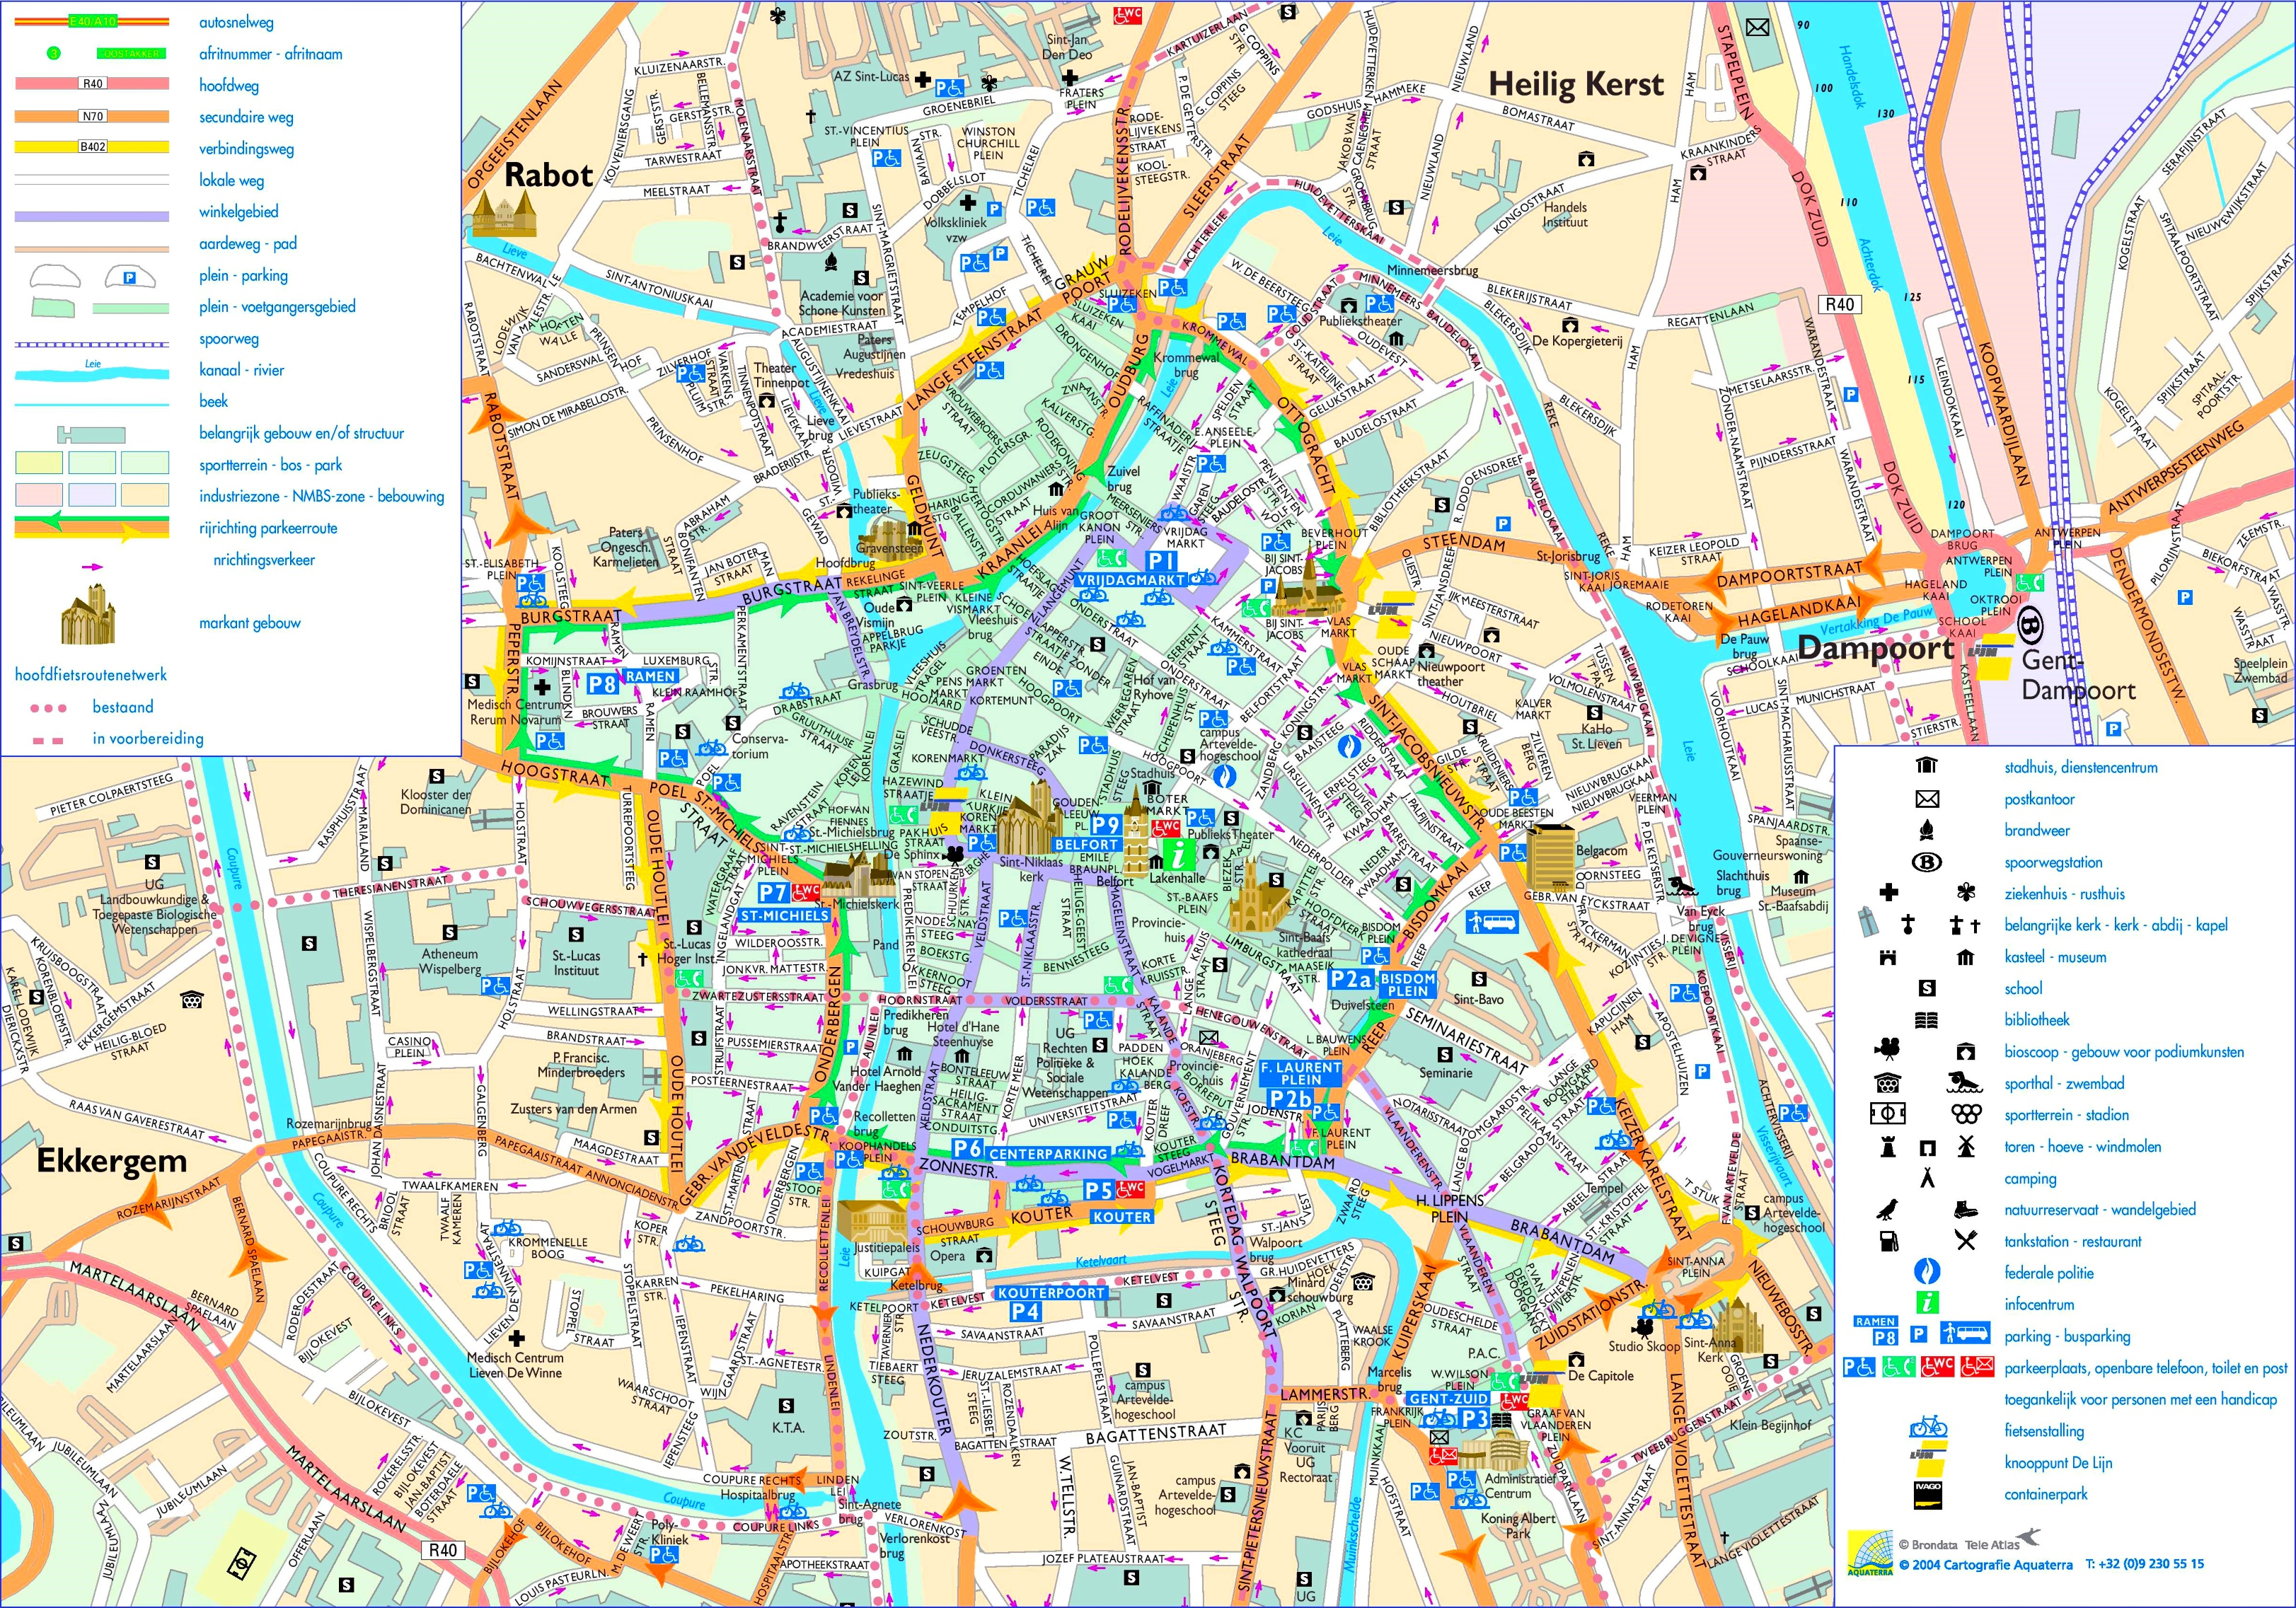 Ghent city center map